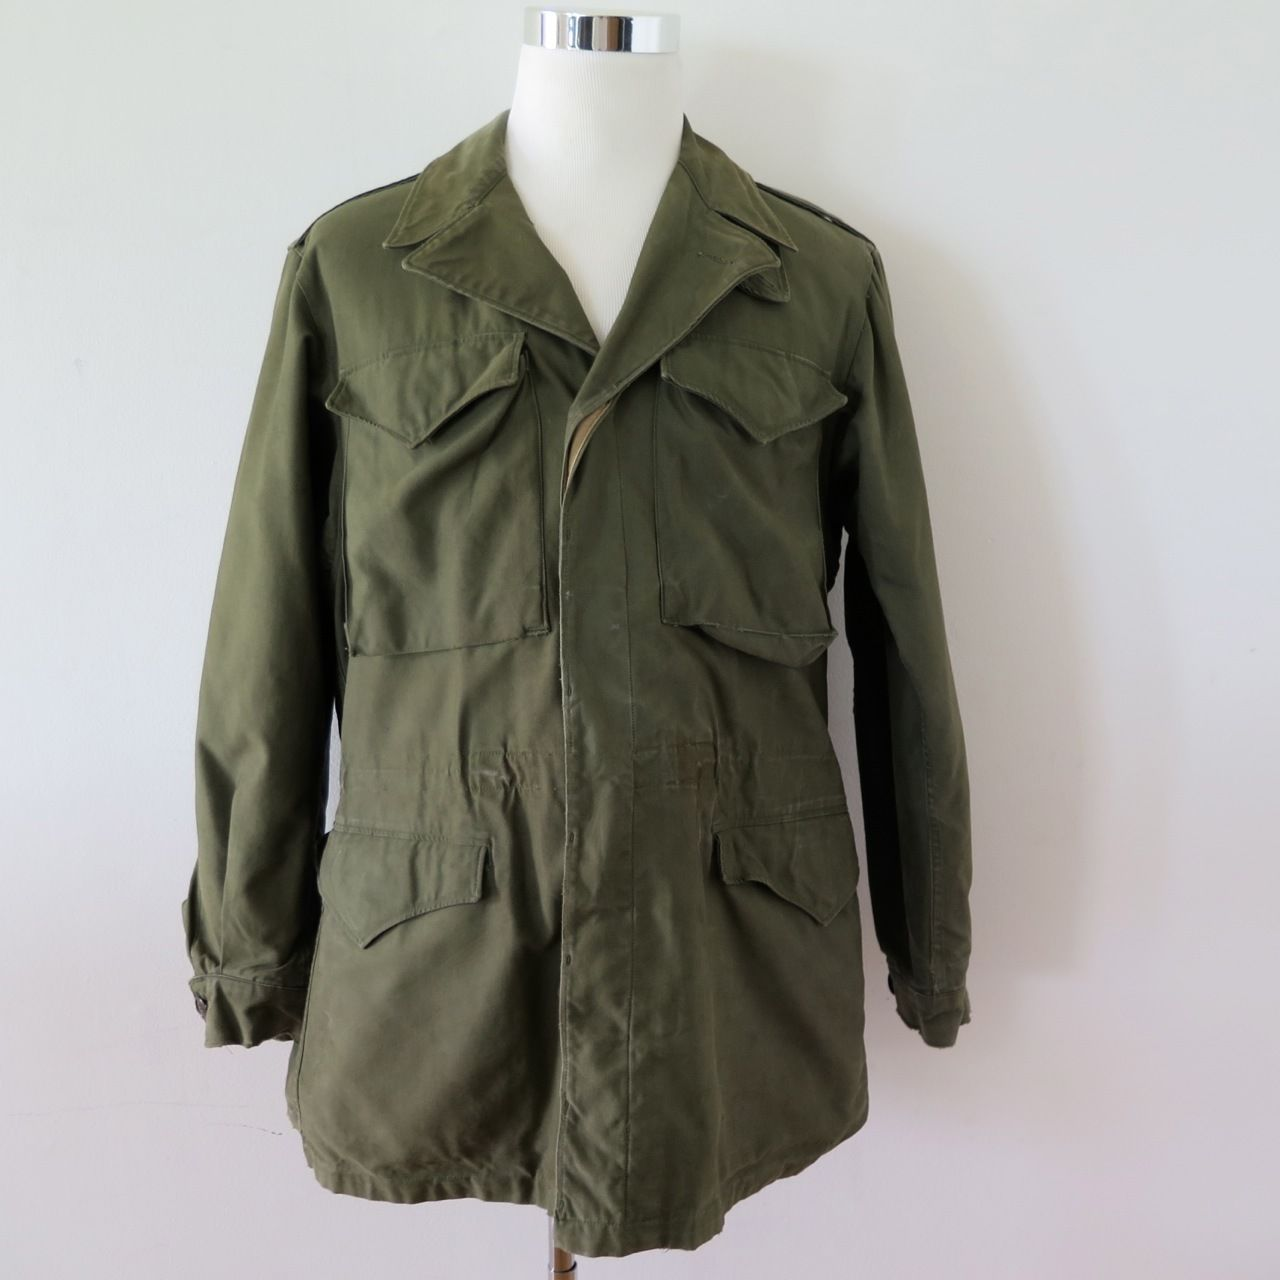 Vintage 40s 1942 Dated World War 2 Overcoat Military 38R PO75nSw